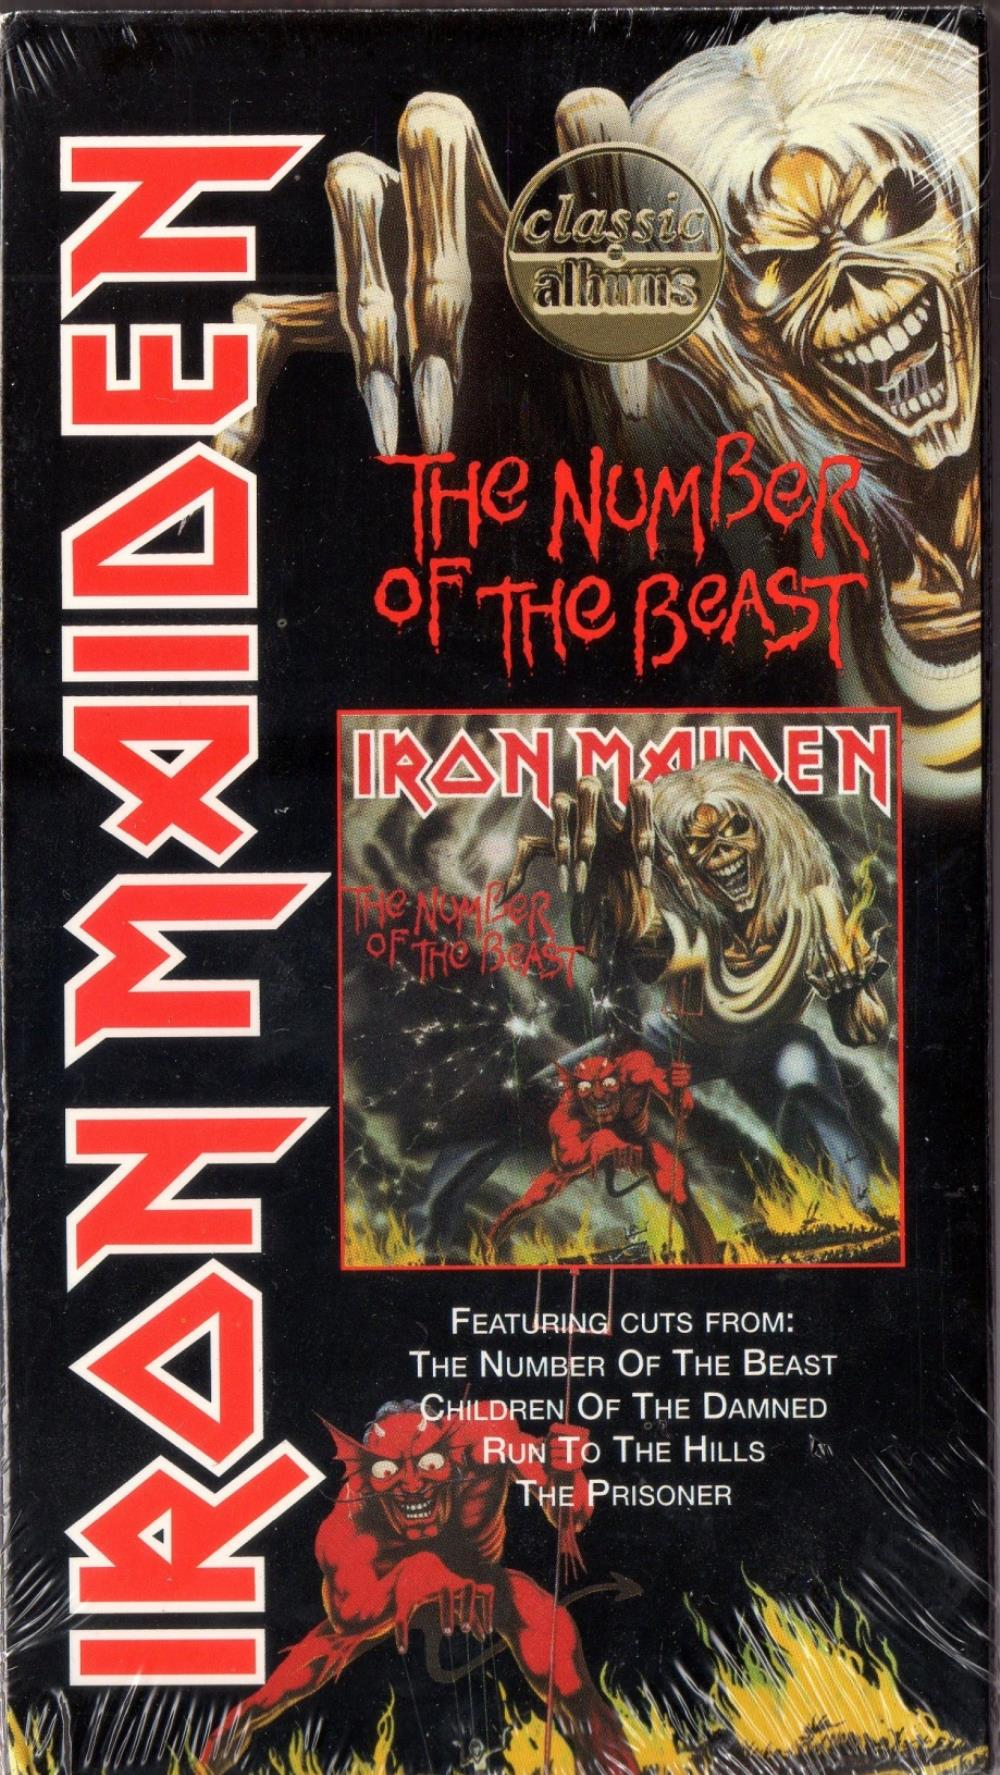 Iron Maiden - Classic Albums: The Number Of The Beast DVD (album) cover